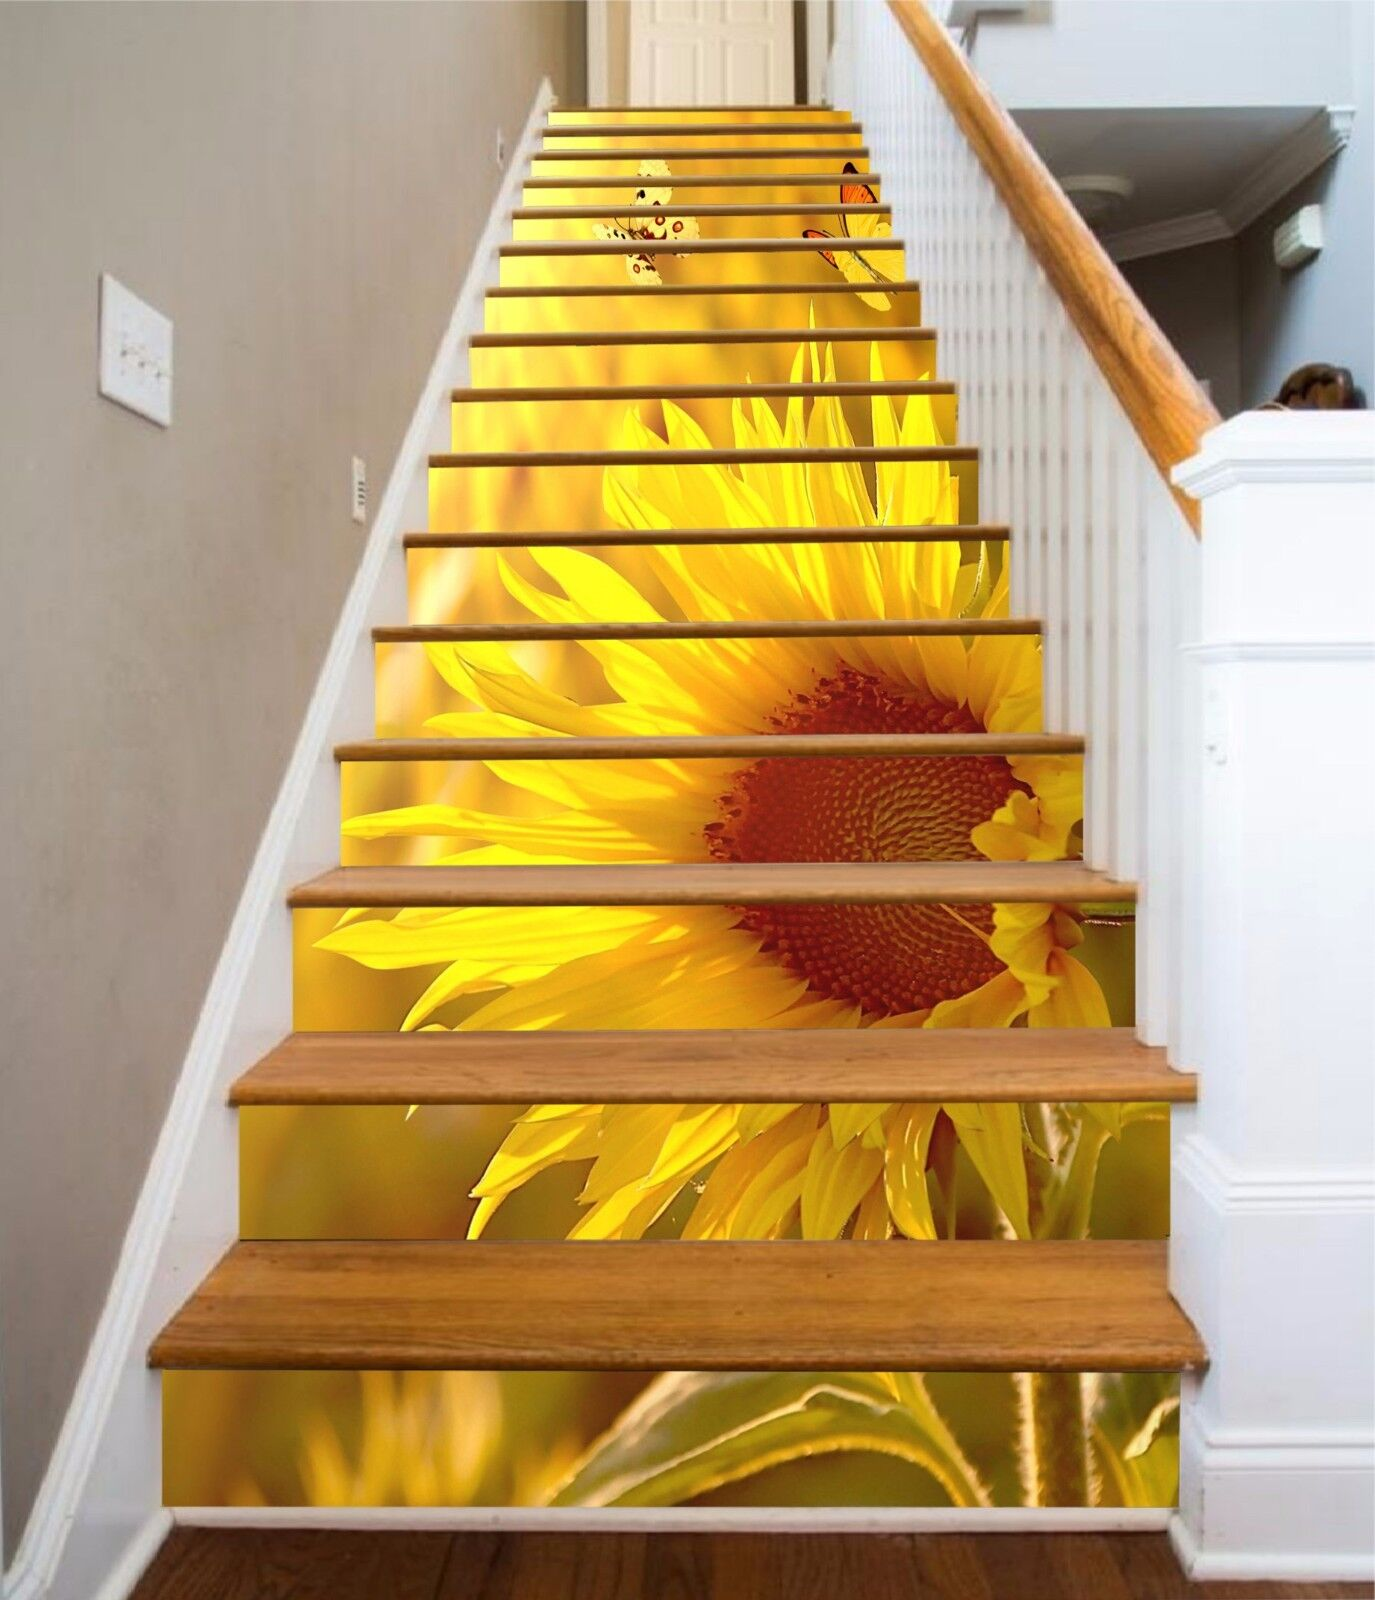 3D Sunflower 649 Stair Risers Decoration Photo Mural Vinyl Decal Wallpaper UK